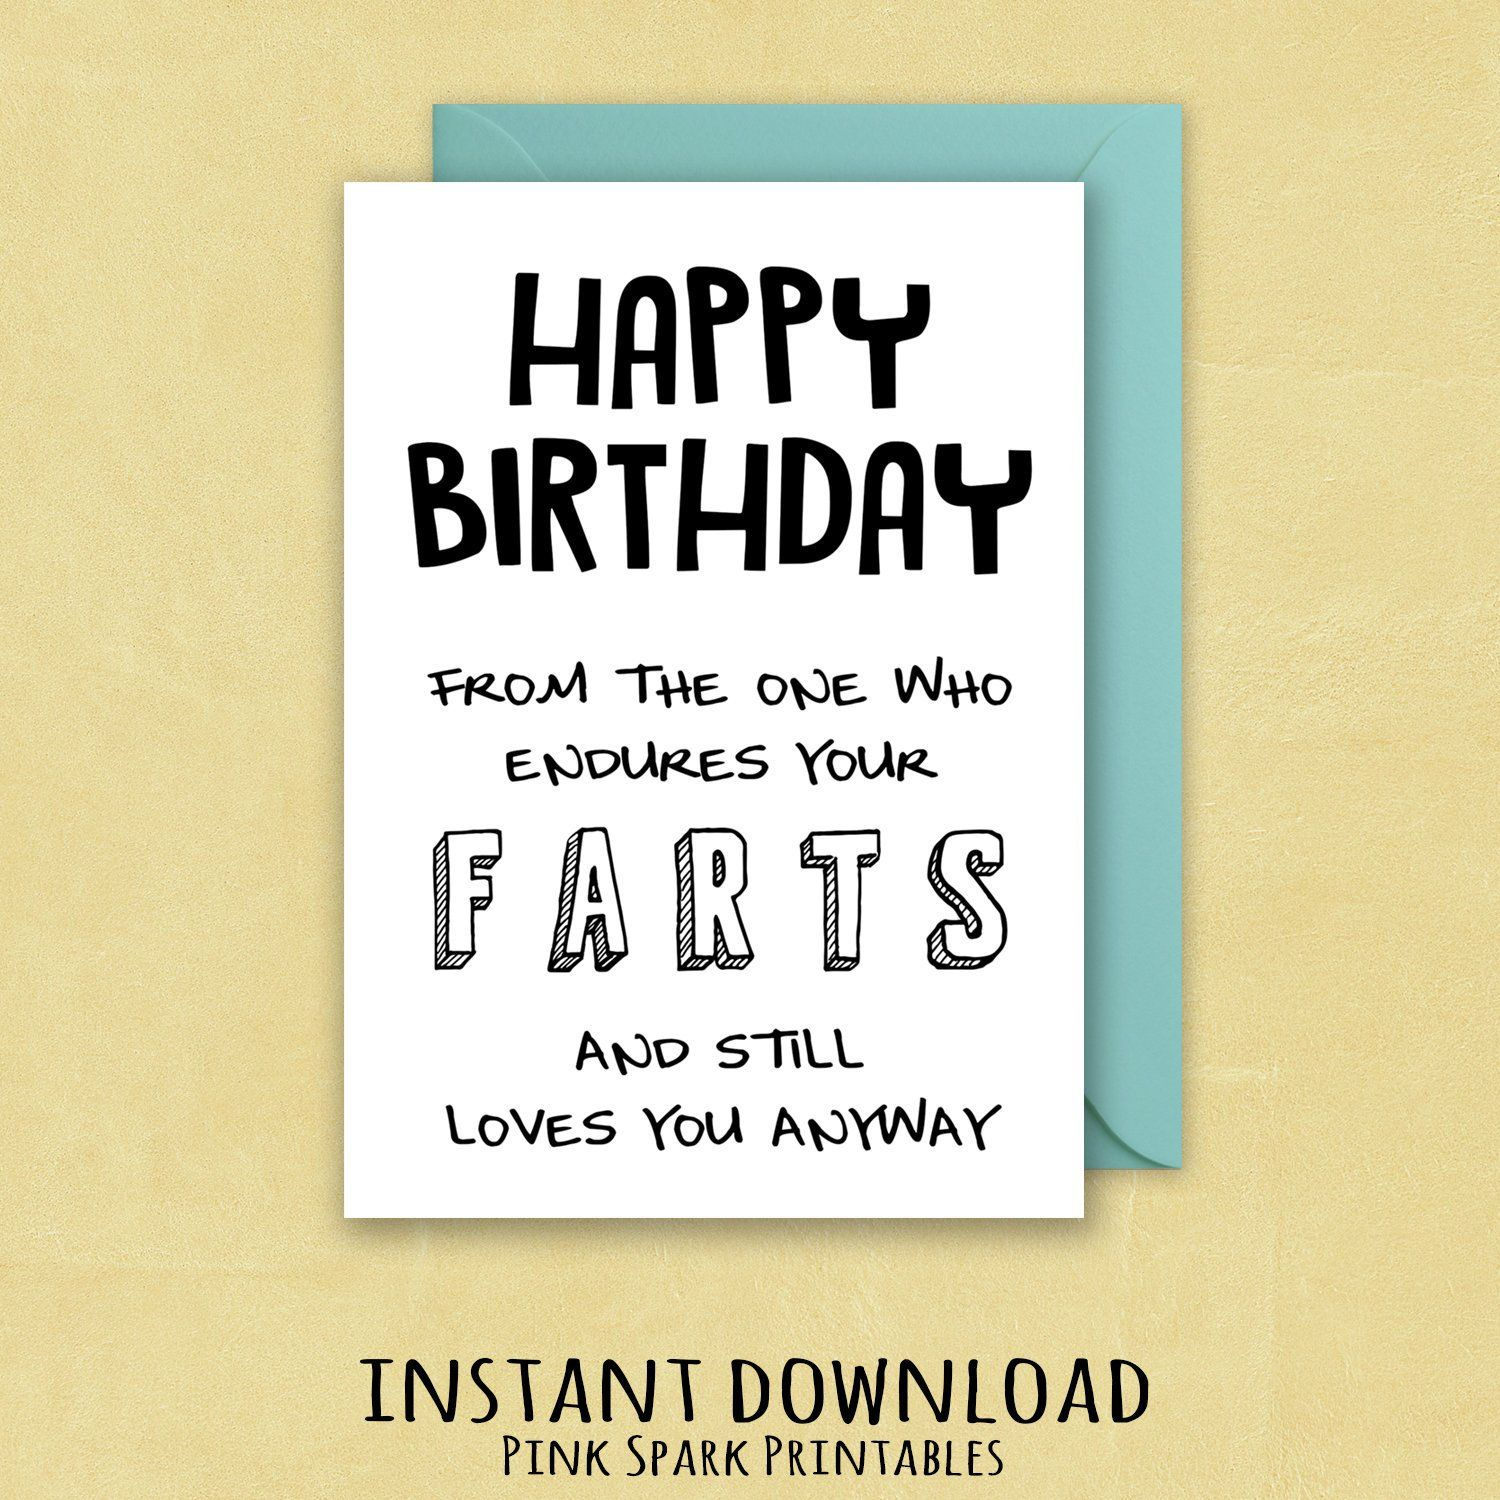 Pin By Nungari On Gasundtoot Thoughtful Gifts For Him Birthday Cards For Brother Farting Birthday Cards